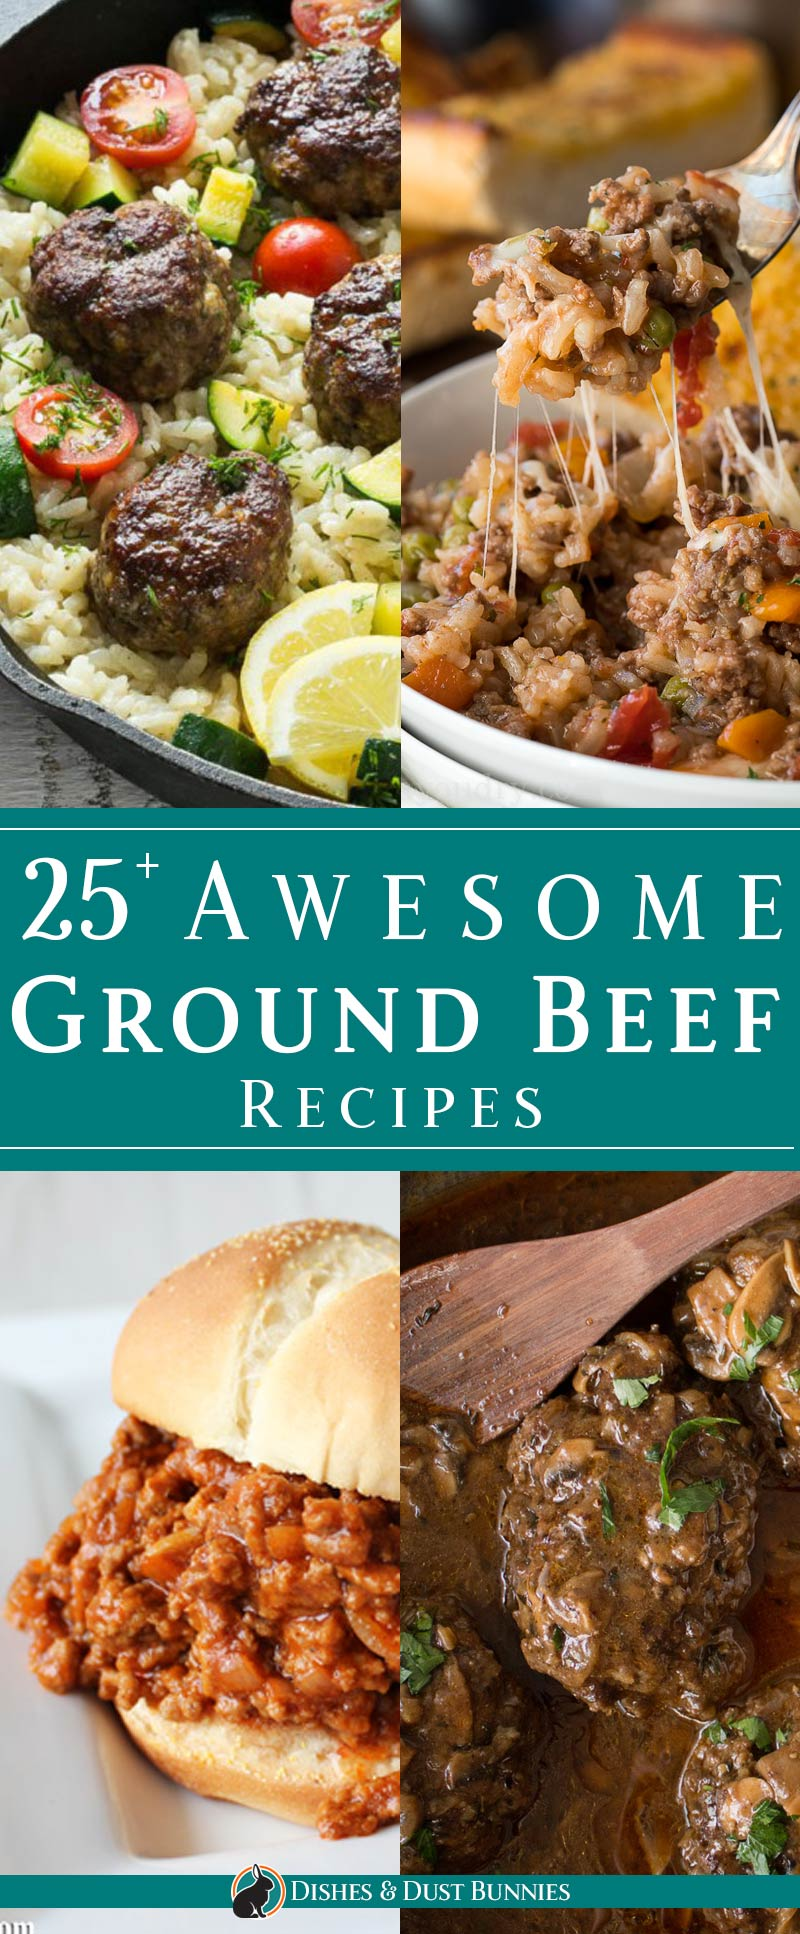 25+ Awesome Ground Beef Recipes - dishesanddustbunnies.com